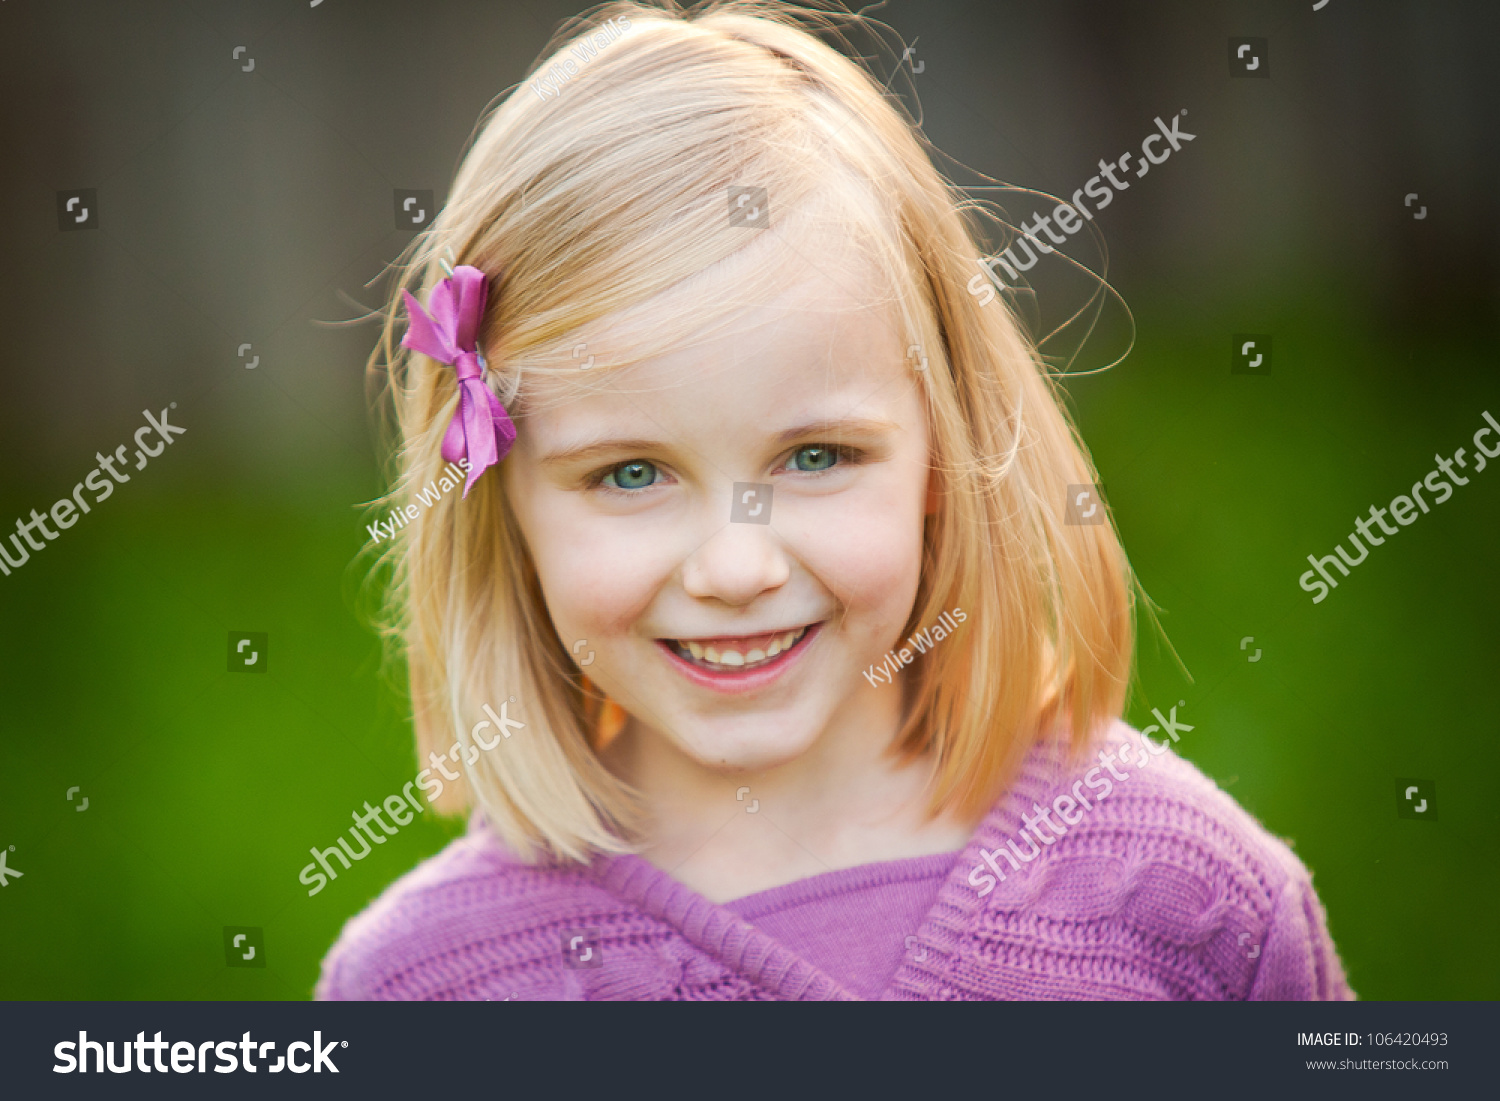 blonde little girl A cute blonde little girl is smiling at the camera. She is wearing a pink